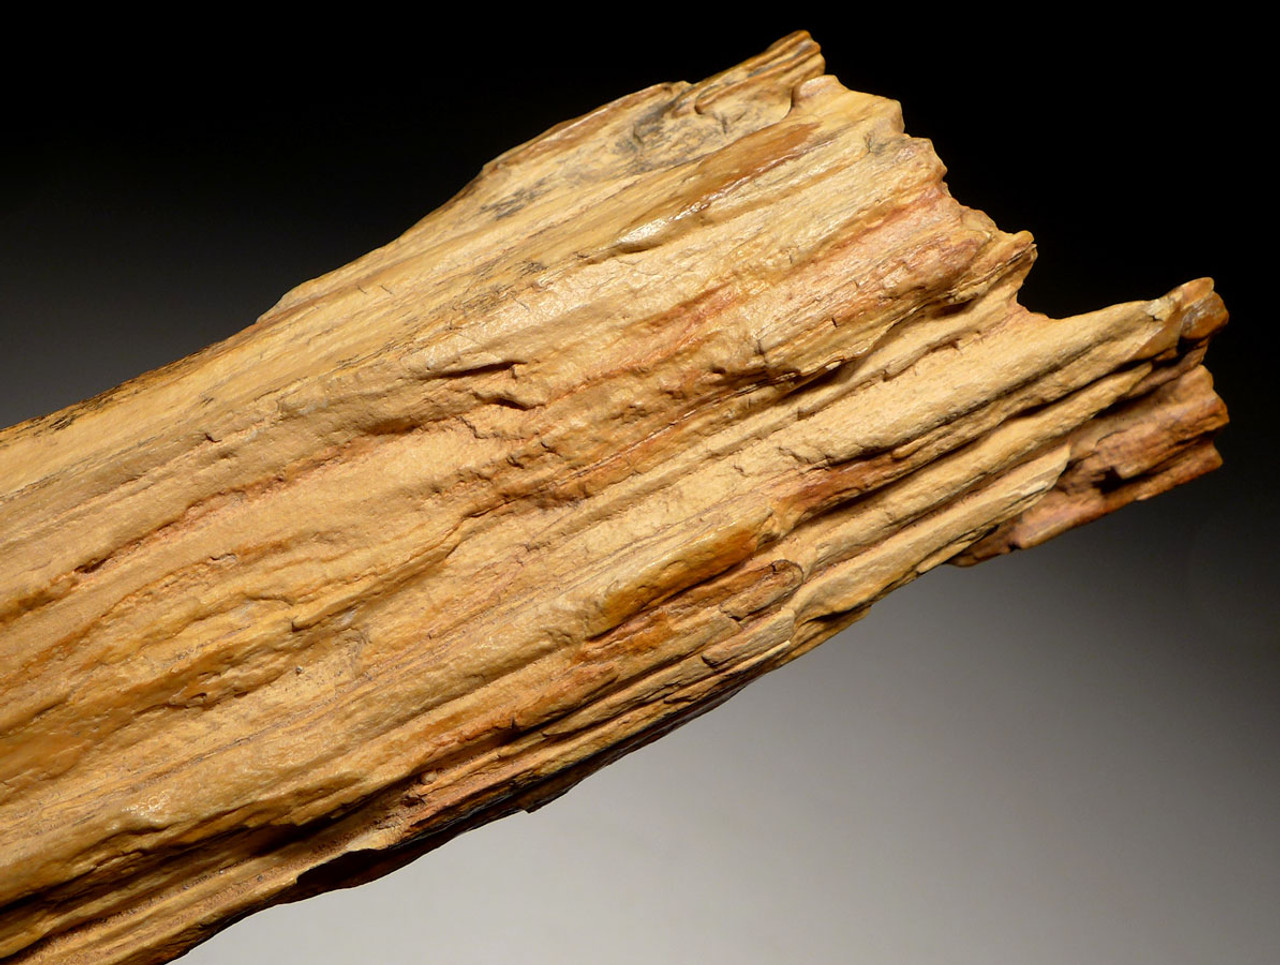 PL128 - SUPER RARE LIFELIKE PETRIFIED LOG FROM THE SOUTH CENTRAL SAHARA DESERT